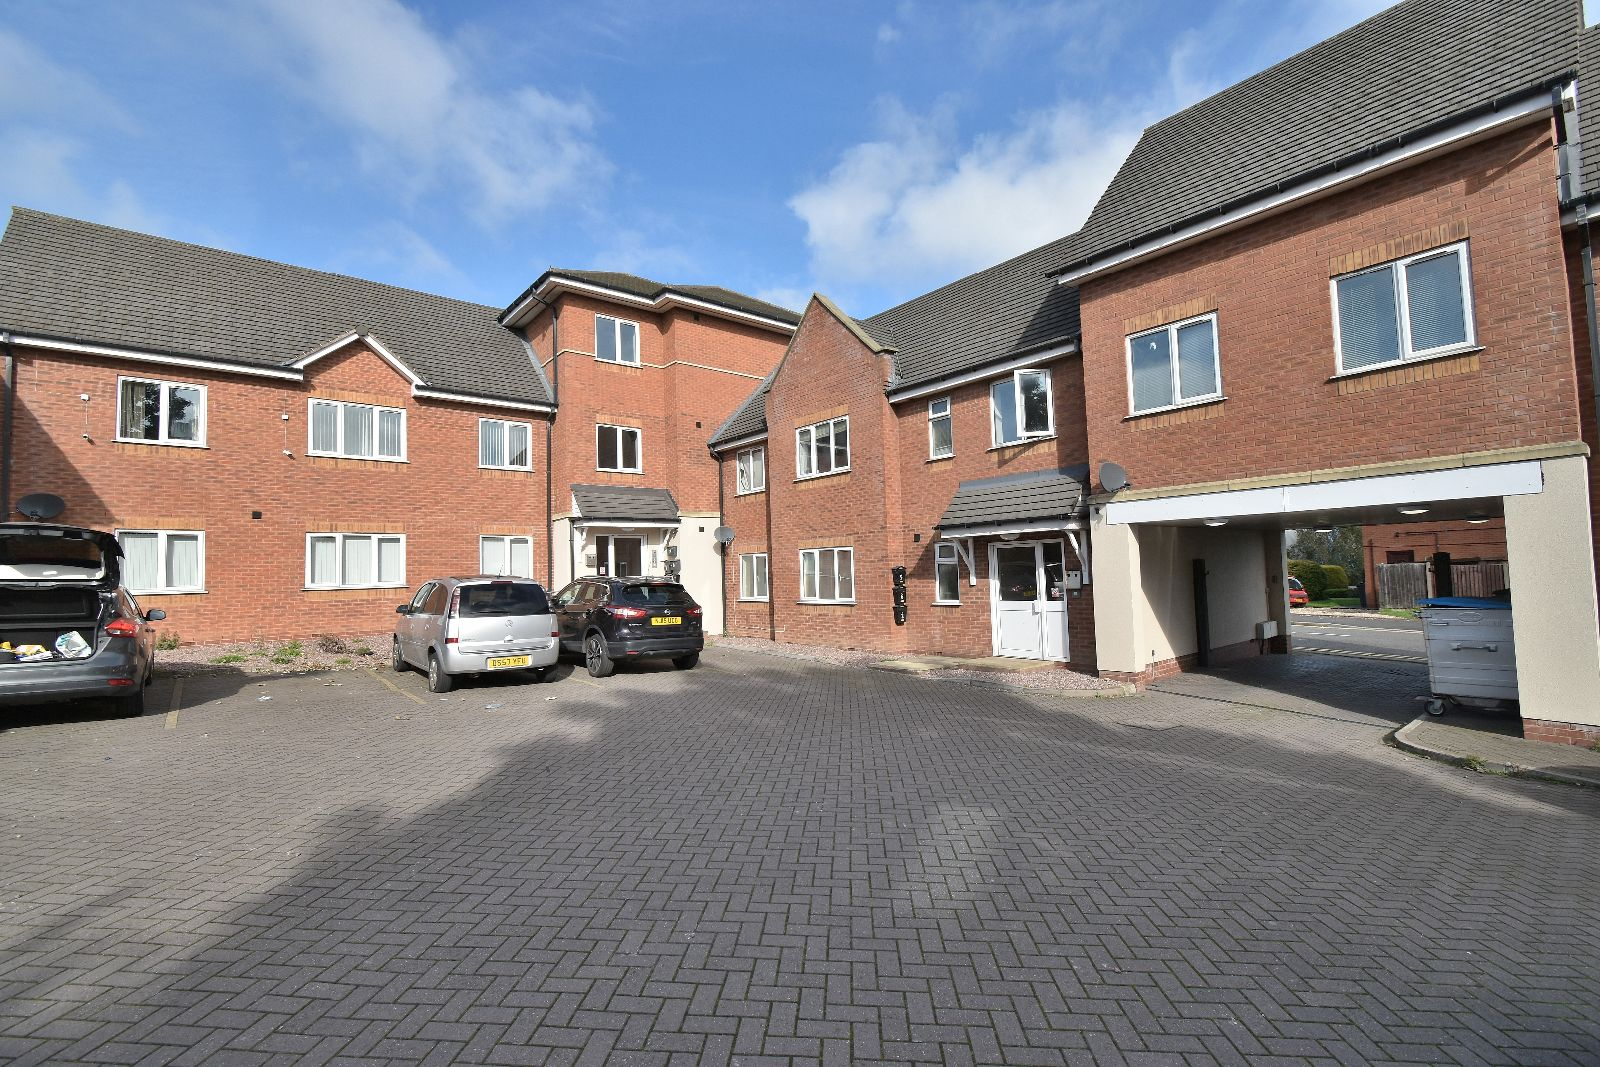 Park Gate Mews, Newhall Street, Tipton, DY4 9HD